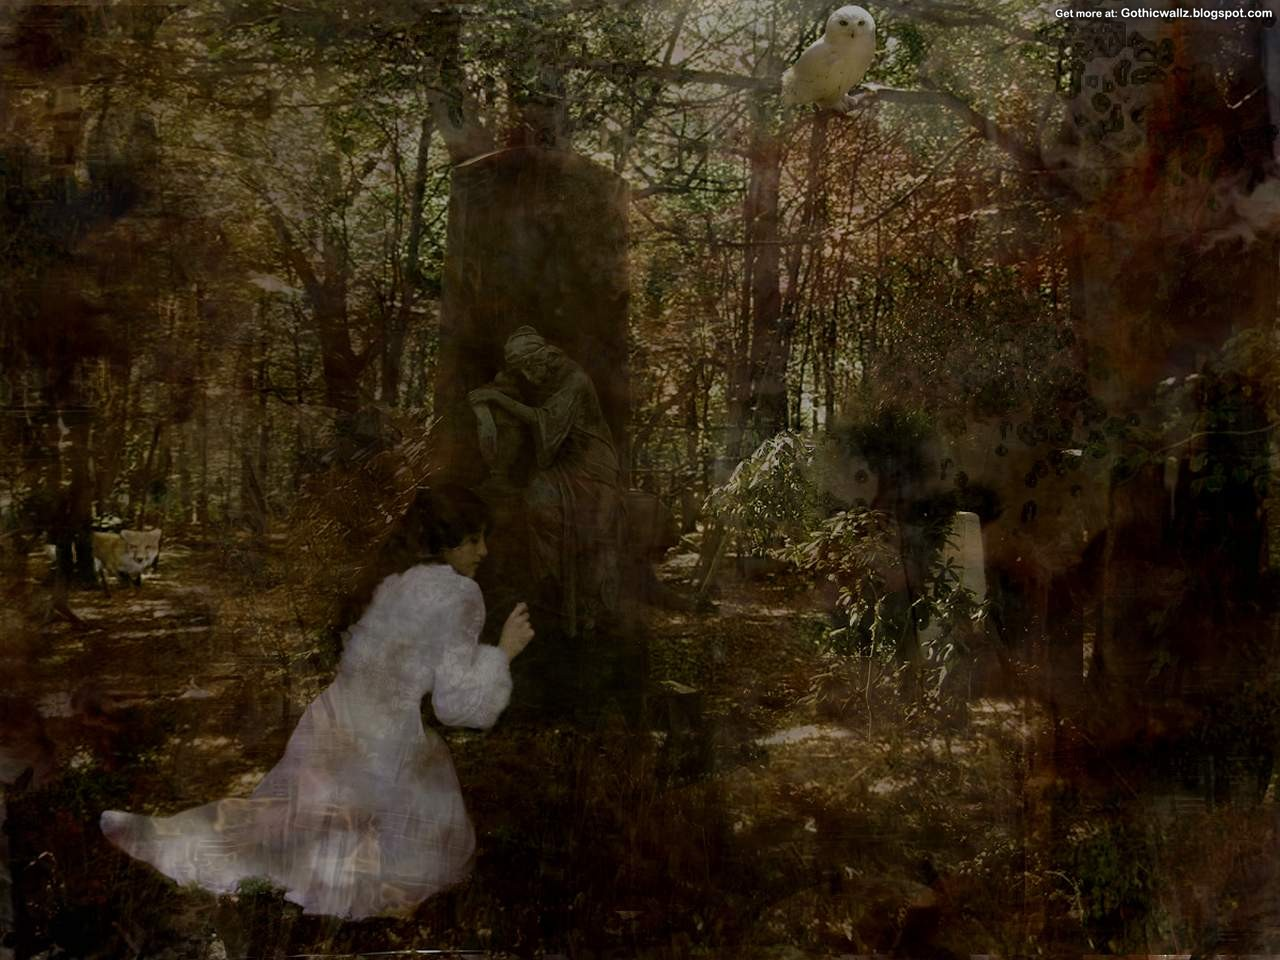 Gothic Wallpapers: Mourning-in-the-forest